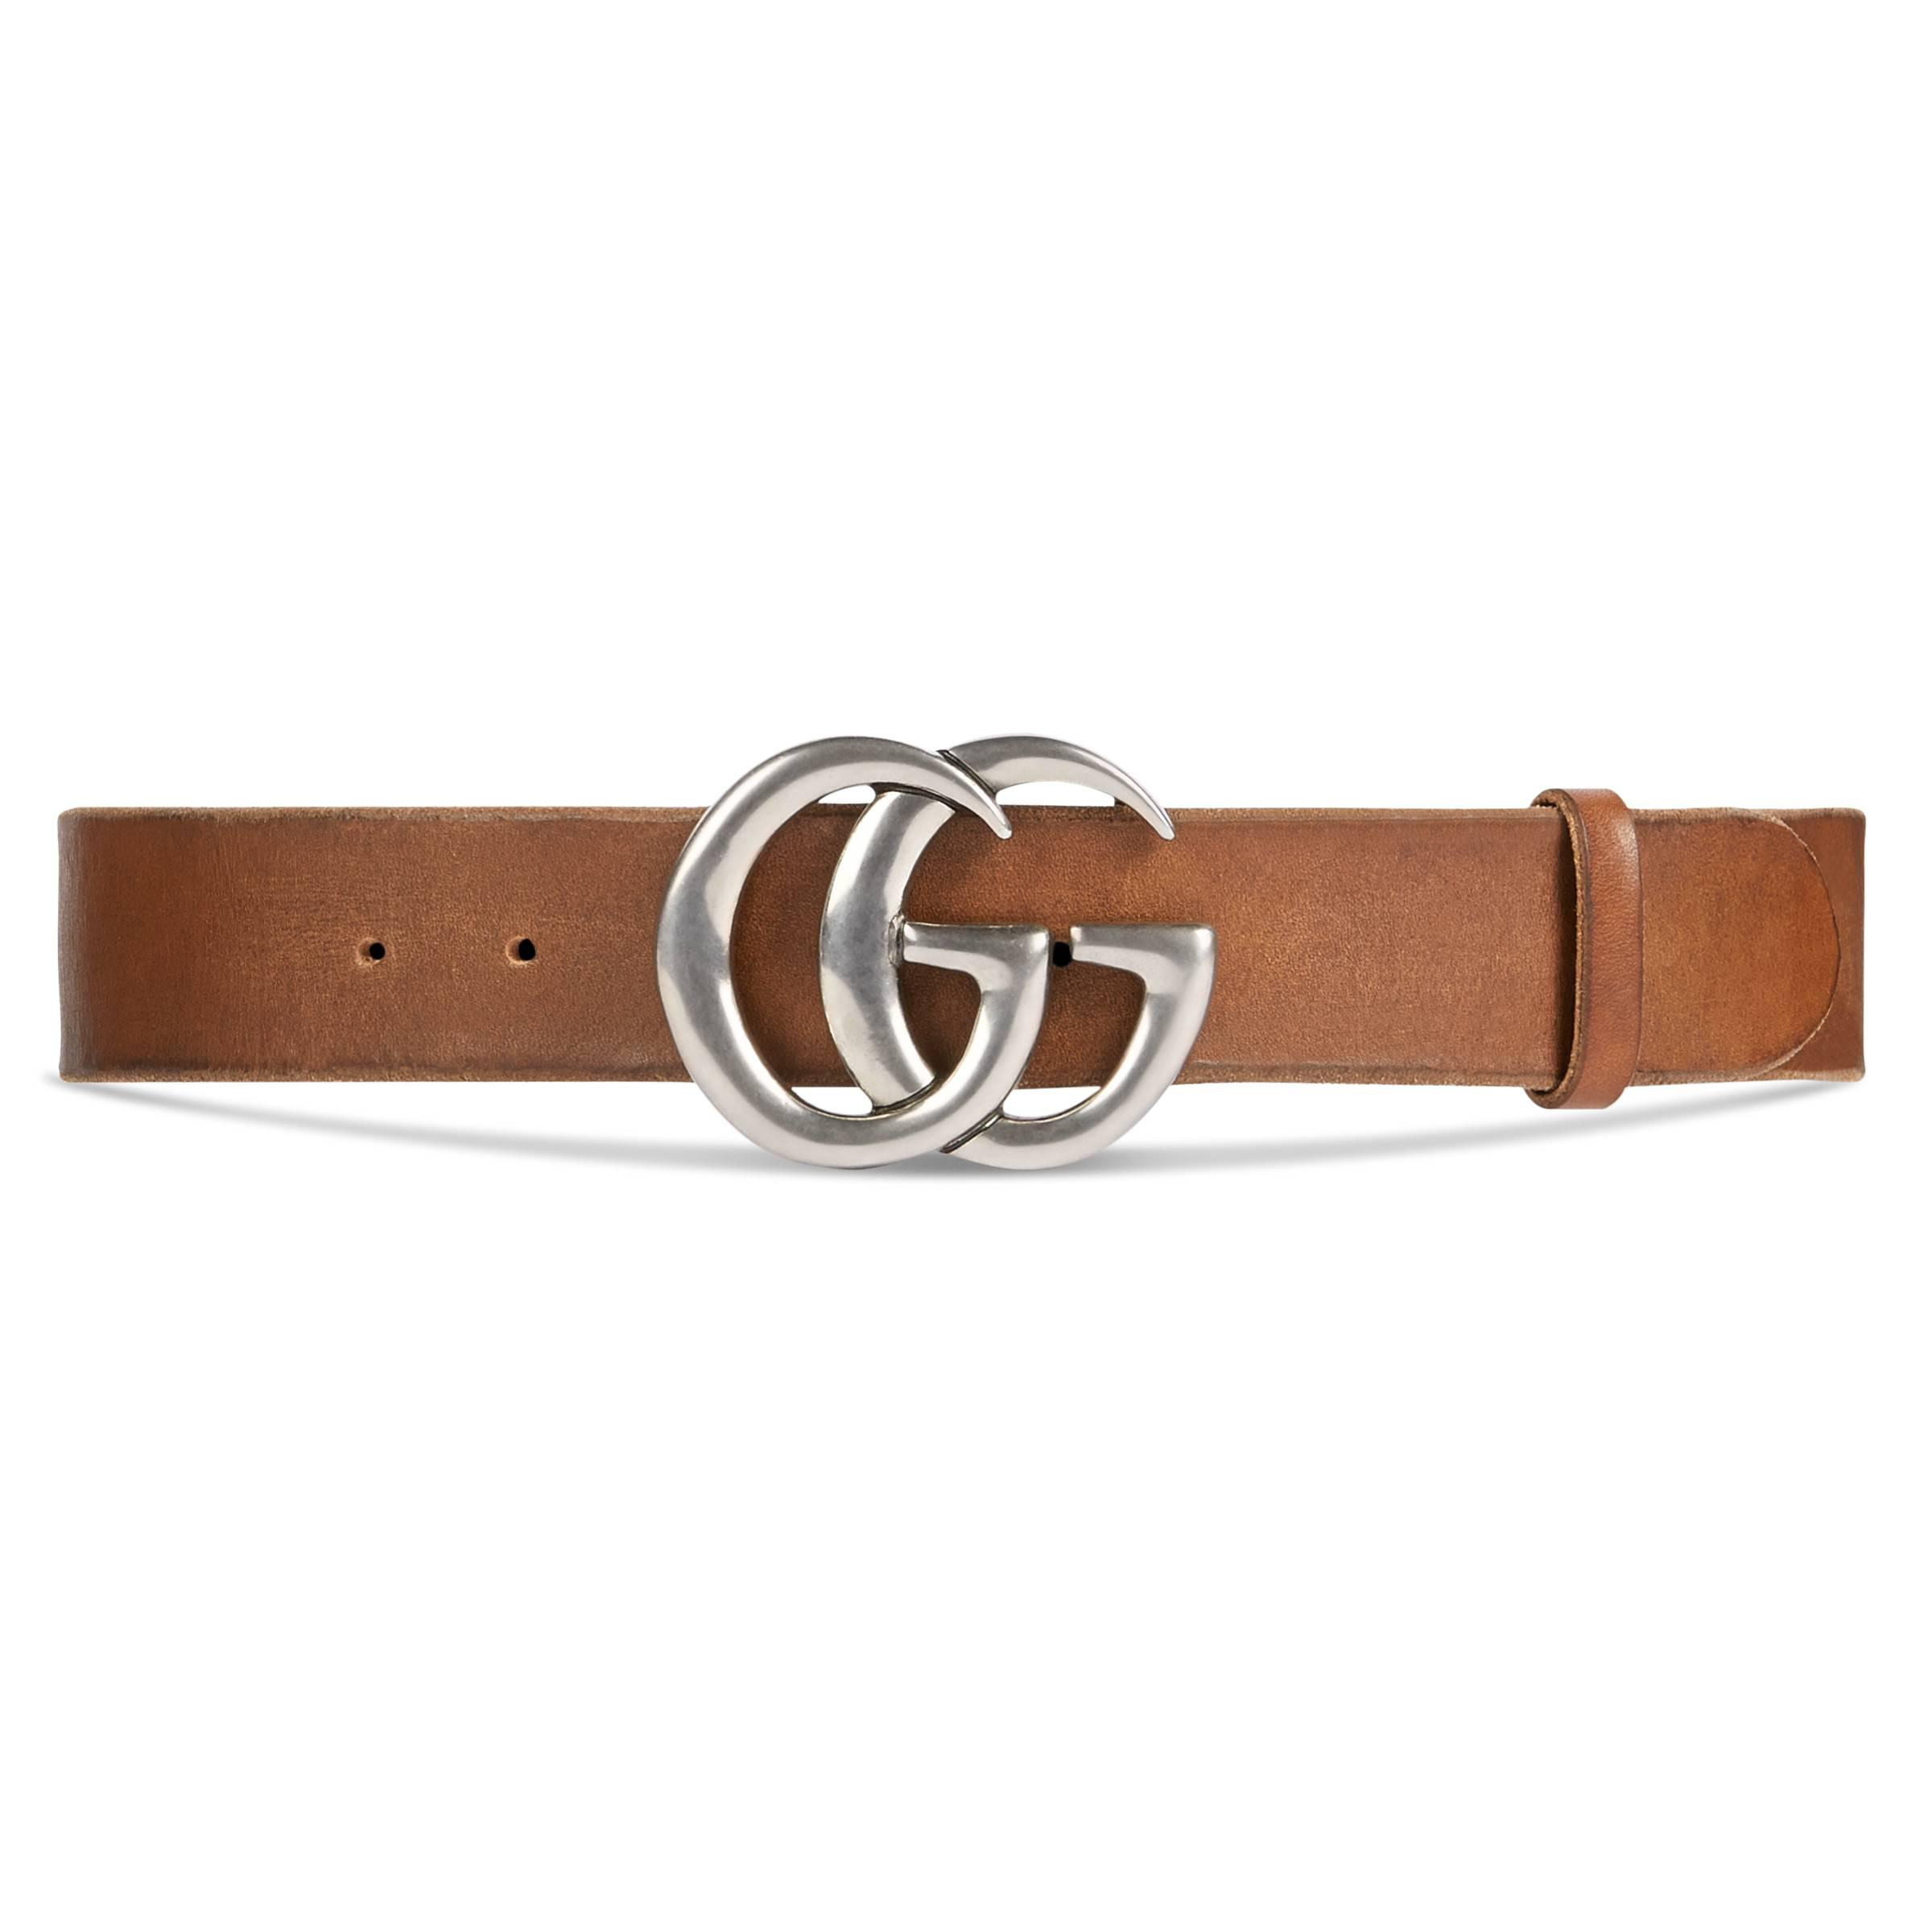 34639c9e723 Gucci Leather Belt With Double G Buckle in Brown for Men - Save 32 ...